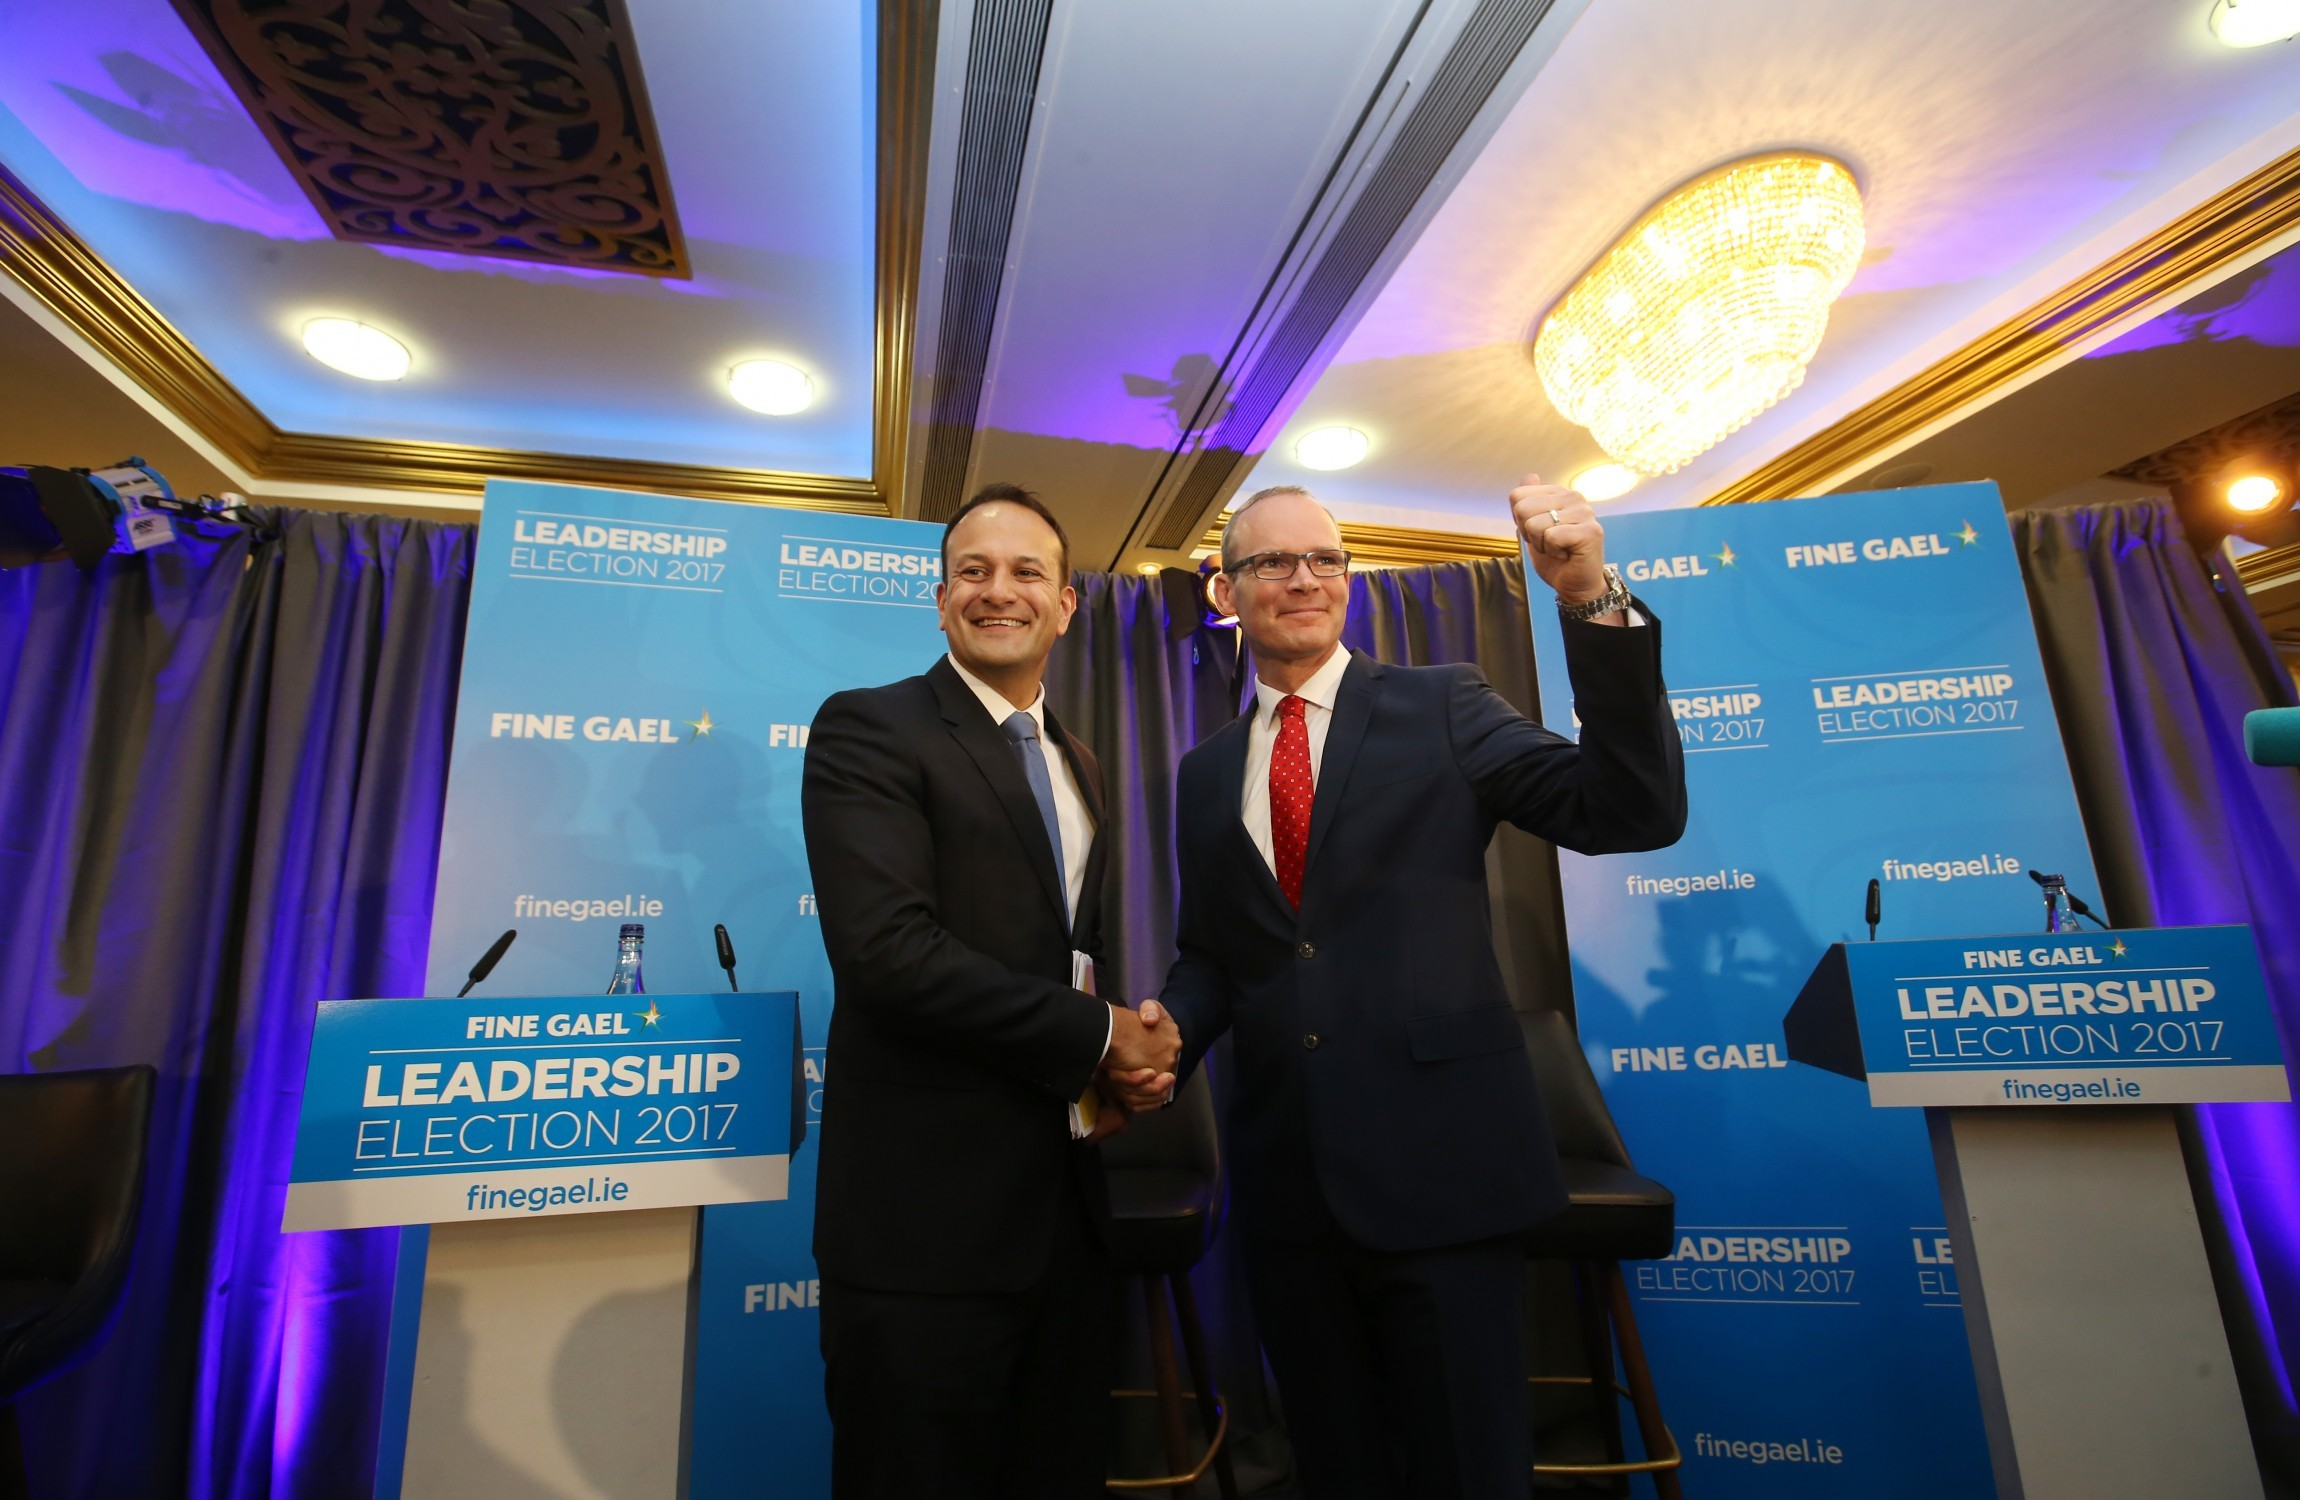 Support for Ireland's Fine Gael surges amid leadership contest